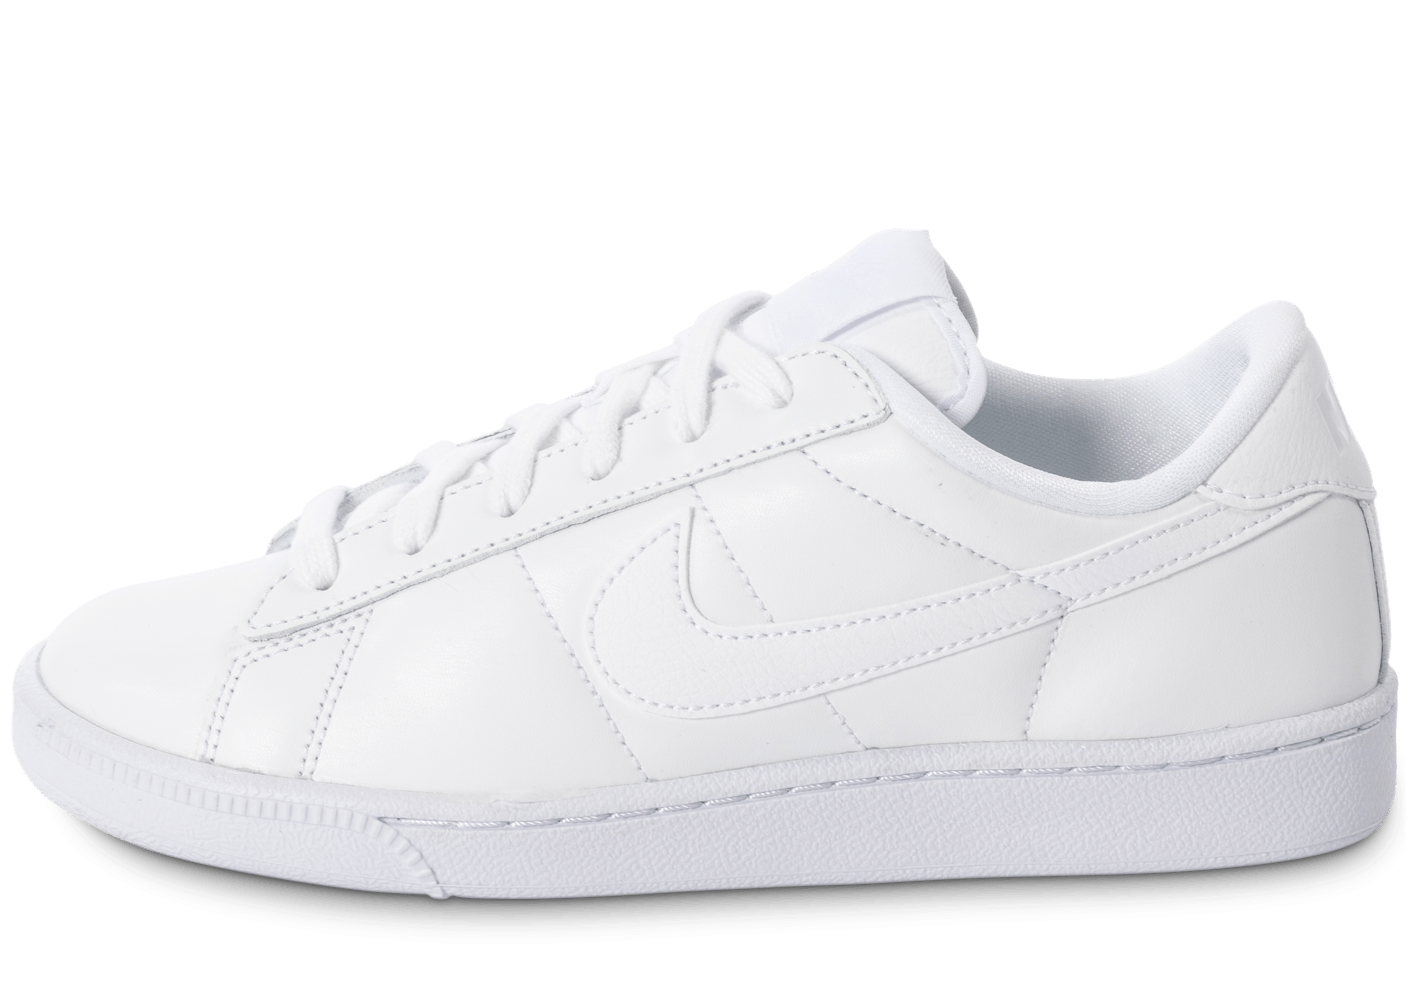 nike tennis classic blanche chaussures chaussures chausport. Black Bedroom Furniture Sets. Home Design Ideas